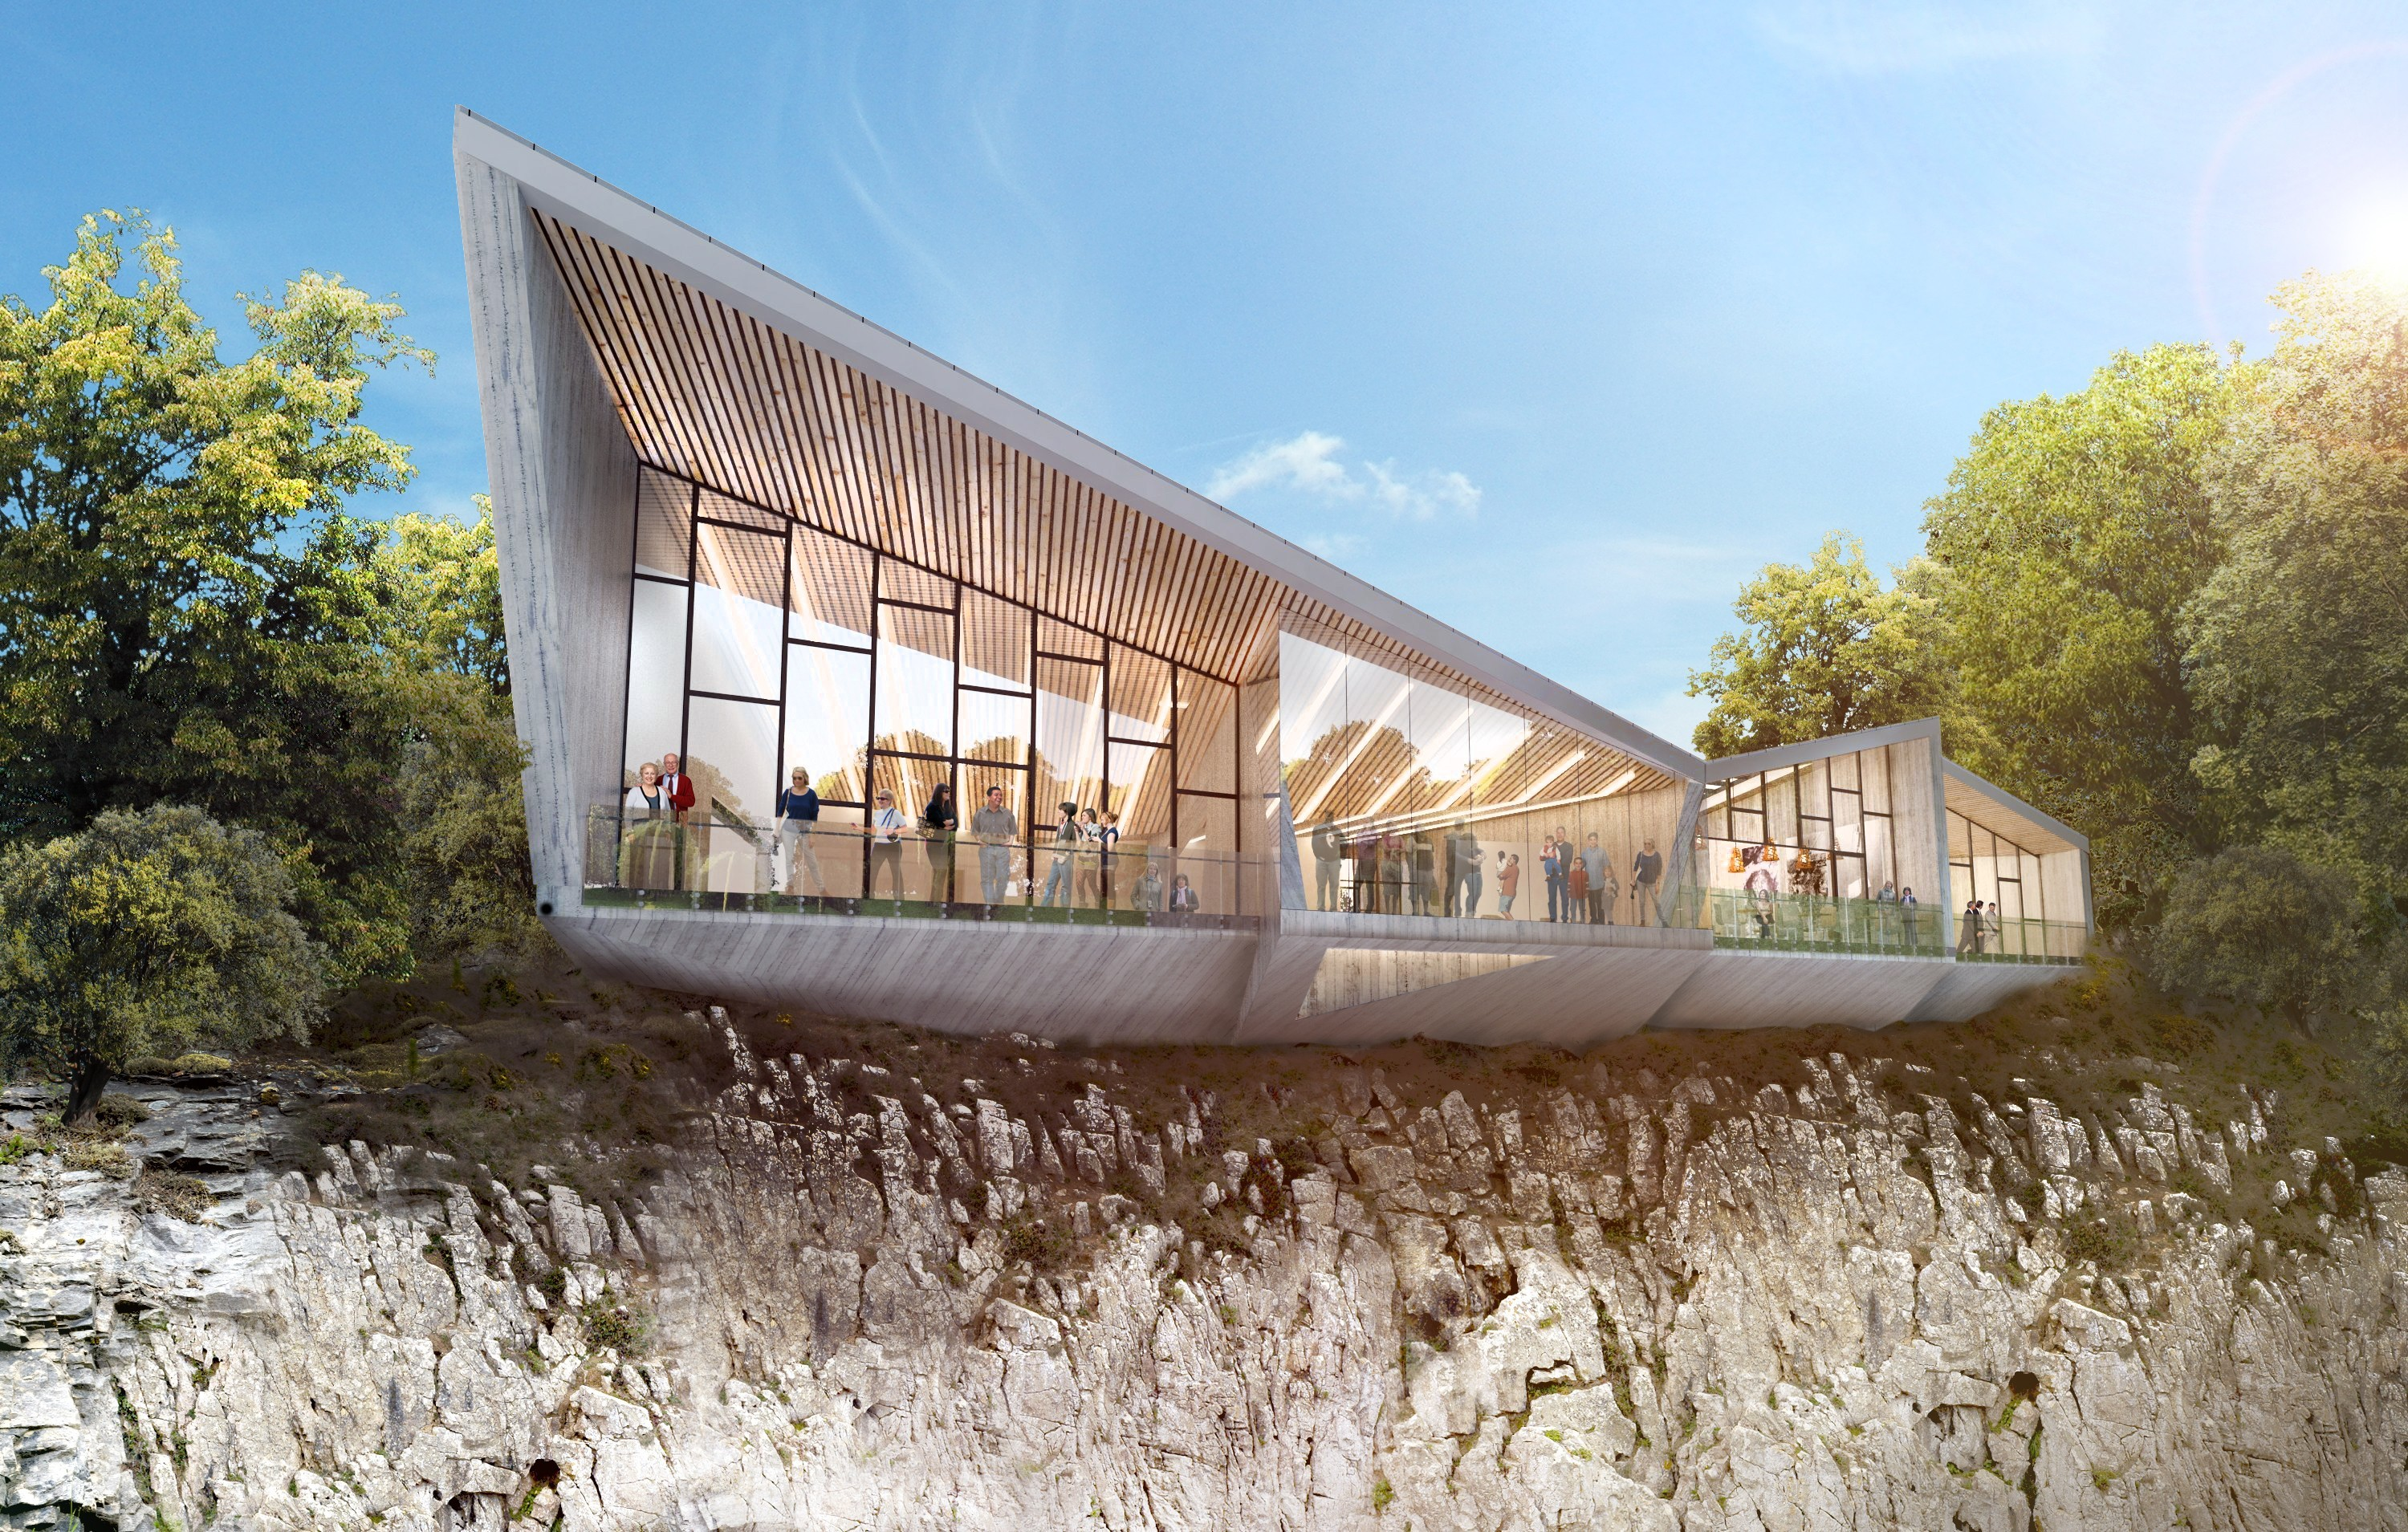 An artist's impression of how a new heritage centre at Aberdeen's Rubislaw Quarry could look.